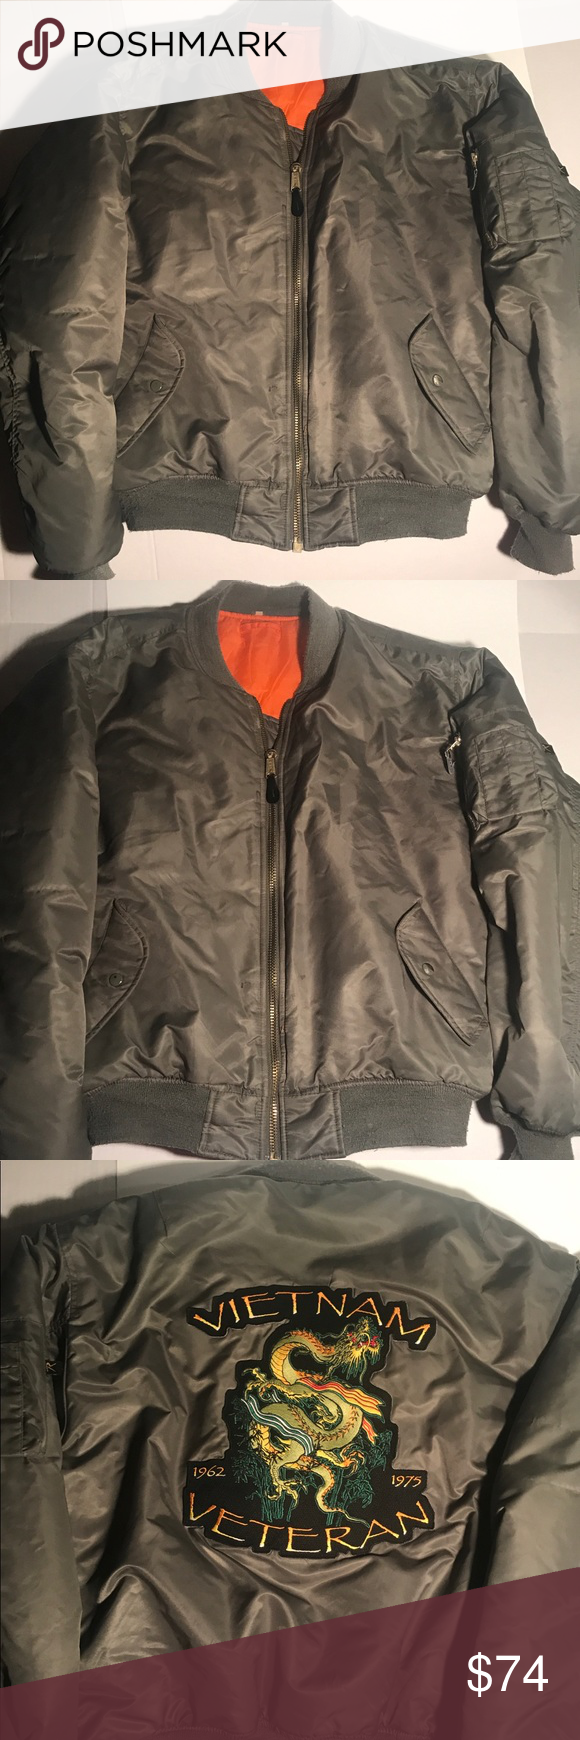 Ma 1 Rothco Bomber Flight Jacket W Vietnam Patch This Jacket Is Excellent Condition No Flaw Barely Worn The Back Of The Jacket Flight Jacket Jackets Rothco [ 1740 x 580 Pixel ]